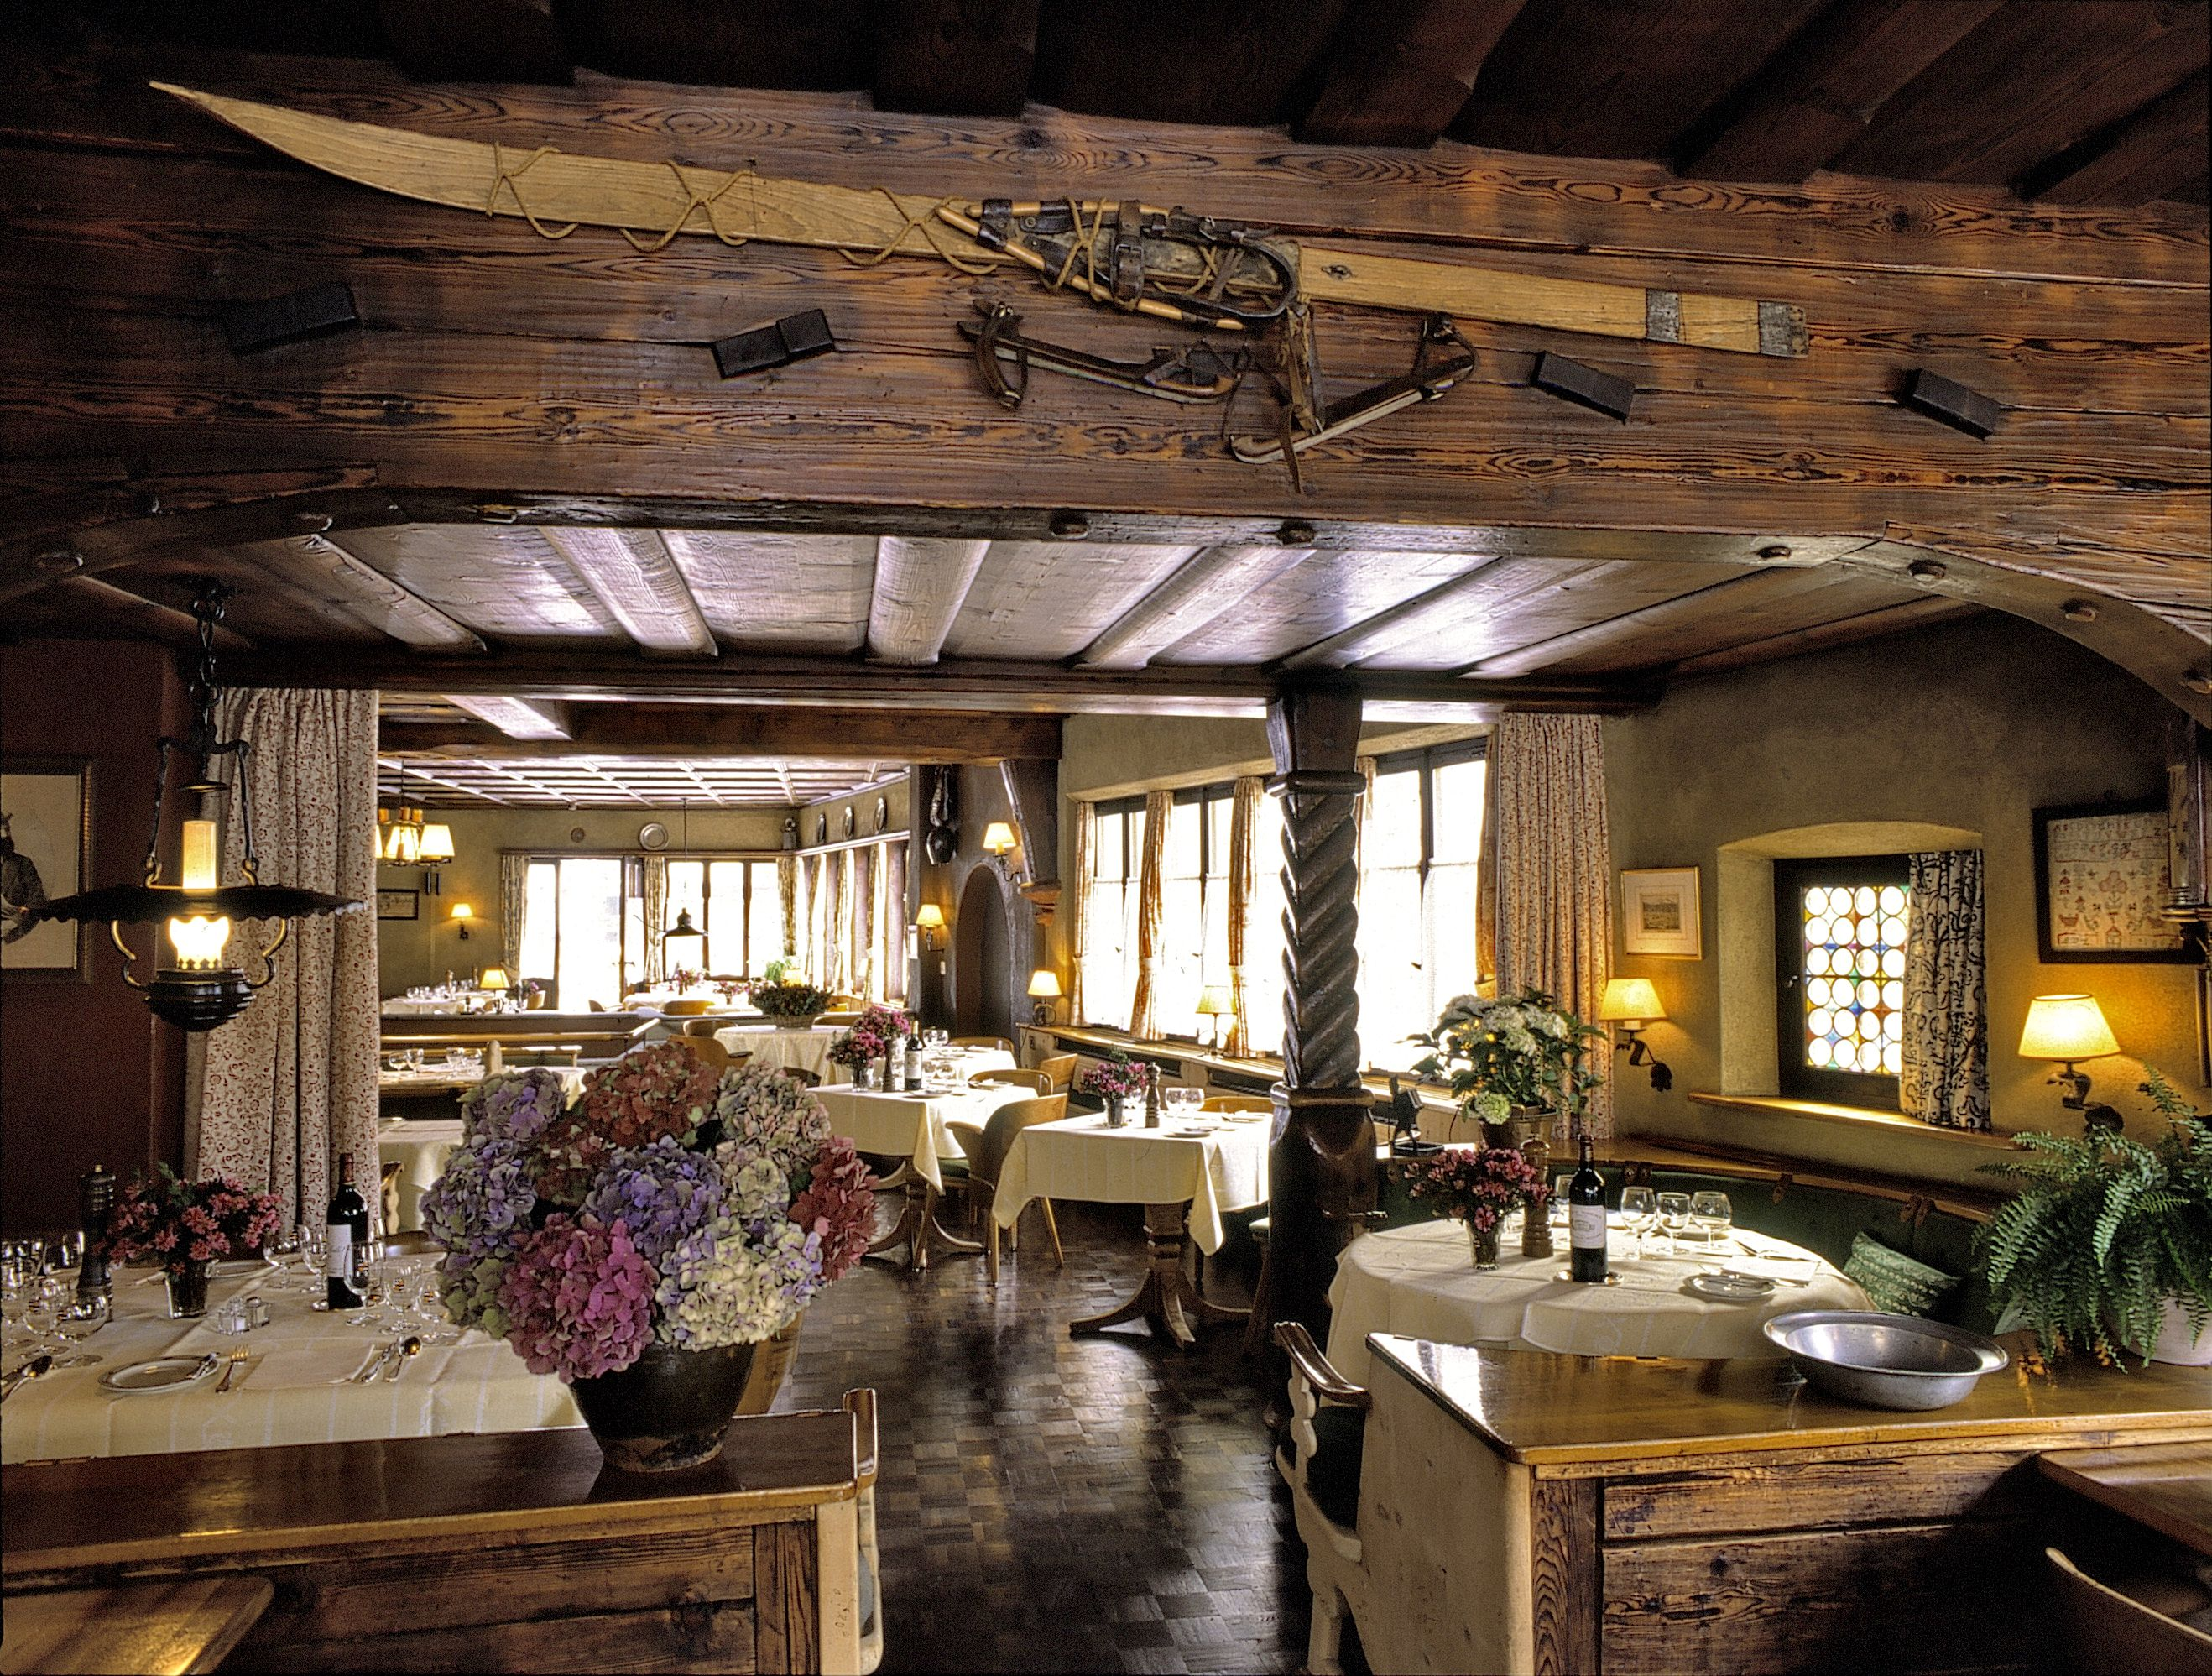 Cucina Arte Bern Dining Room At The Chesa Grischuna Klosters People Places And